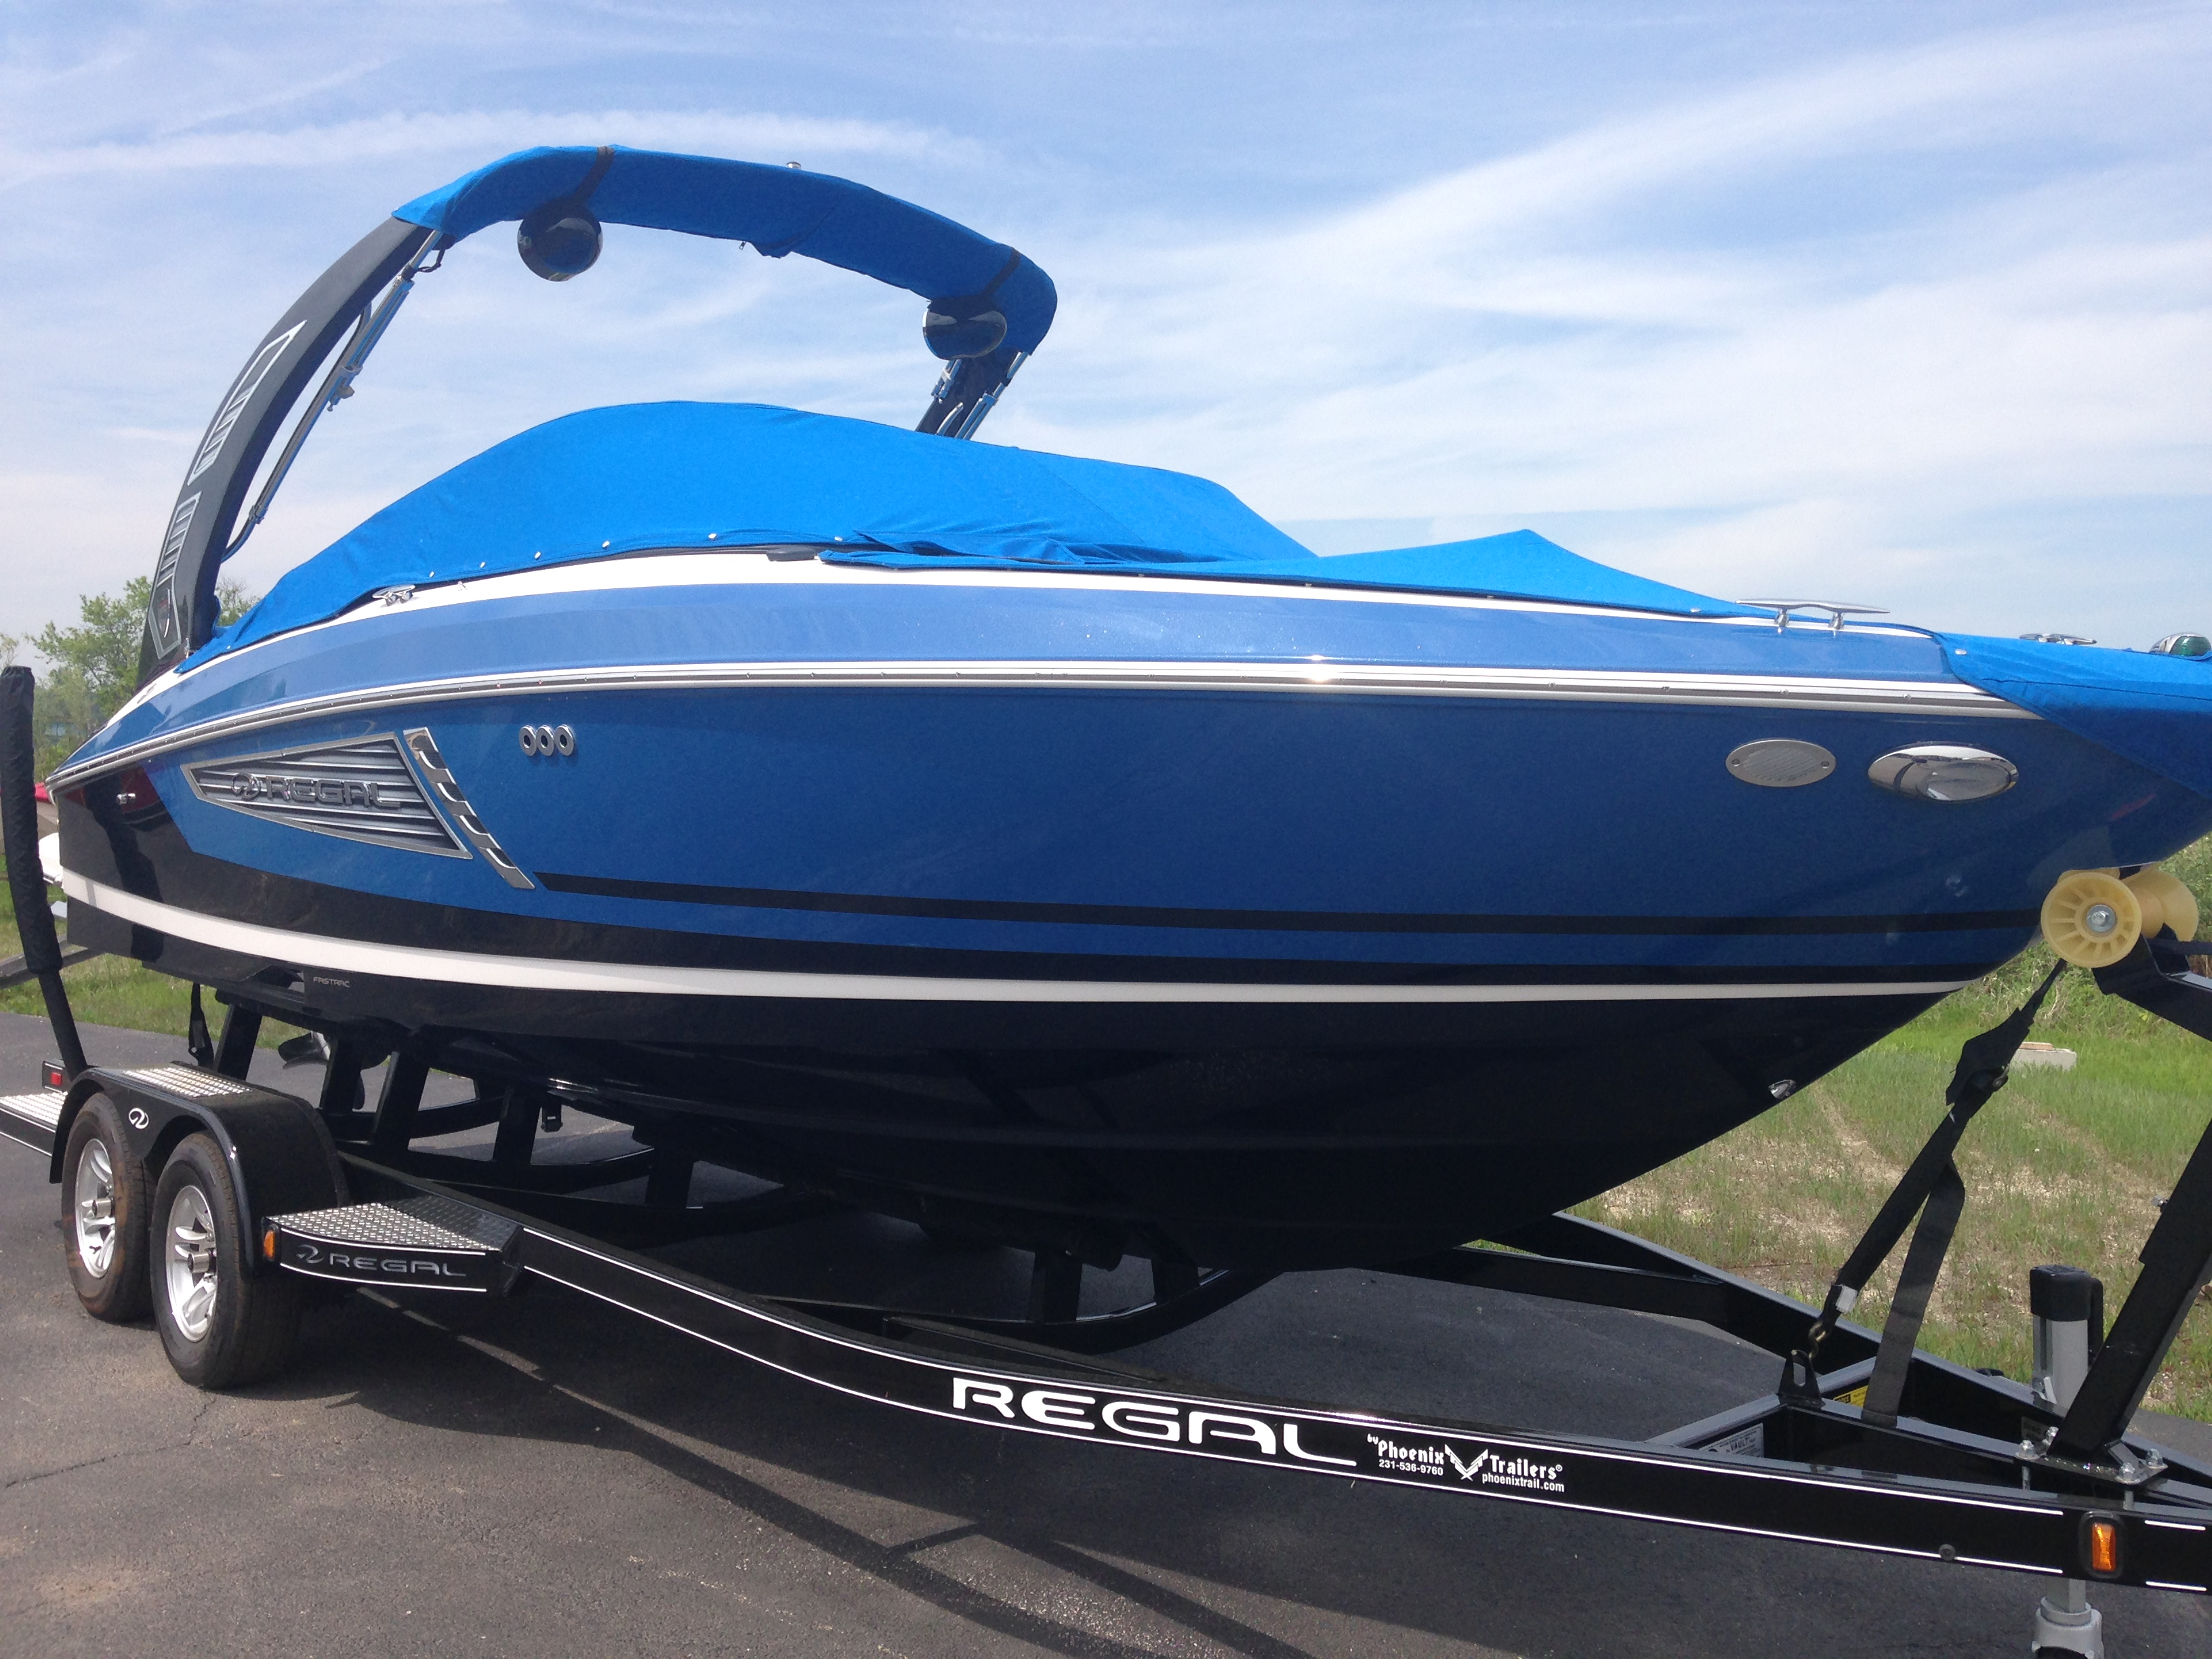 Regal 2300 Surf